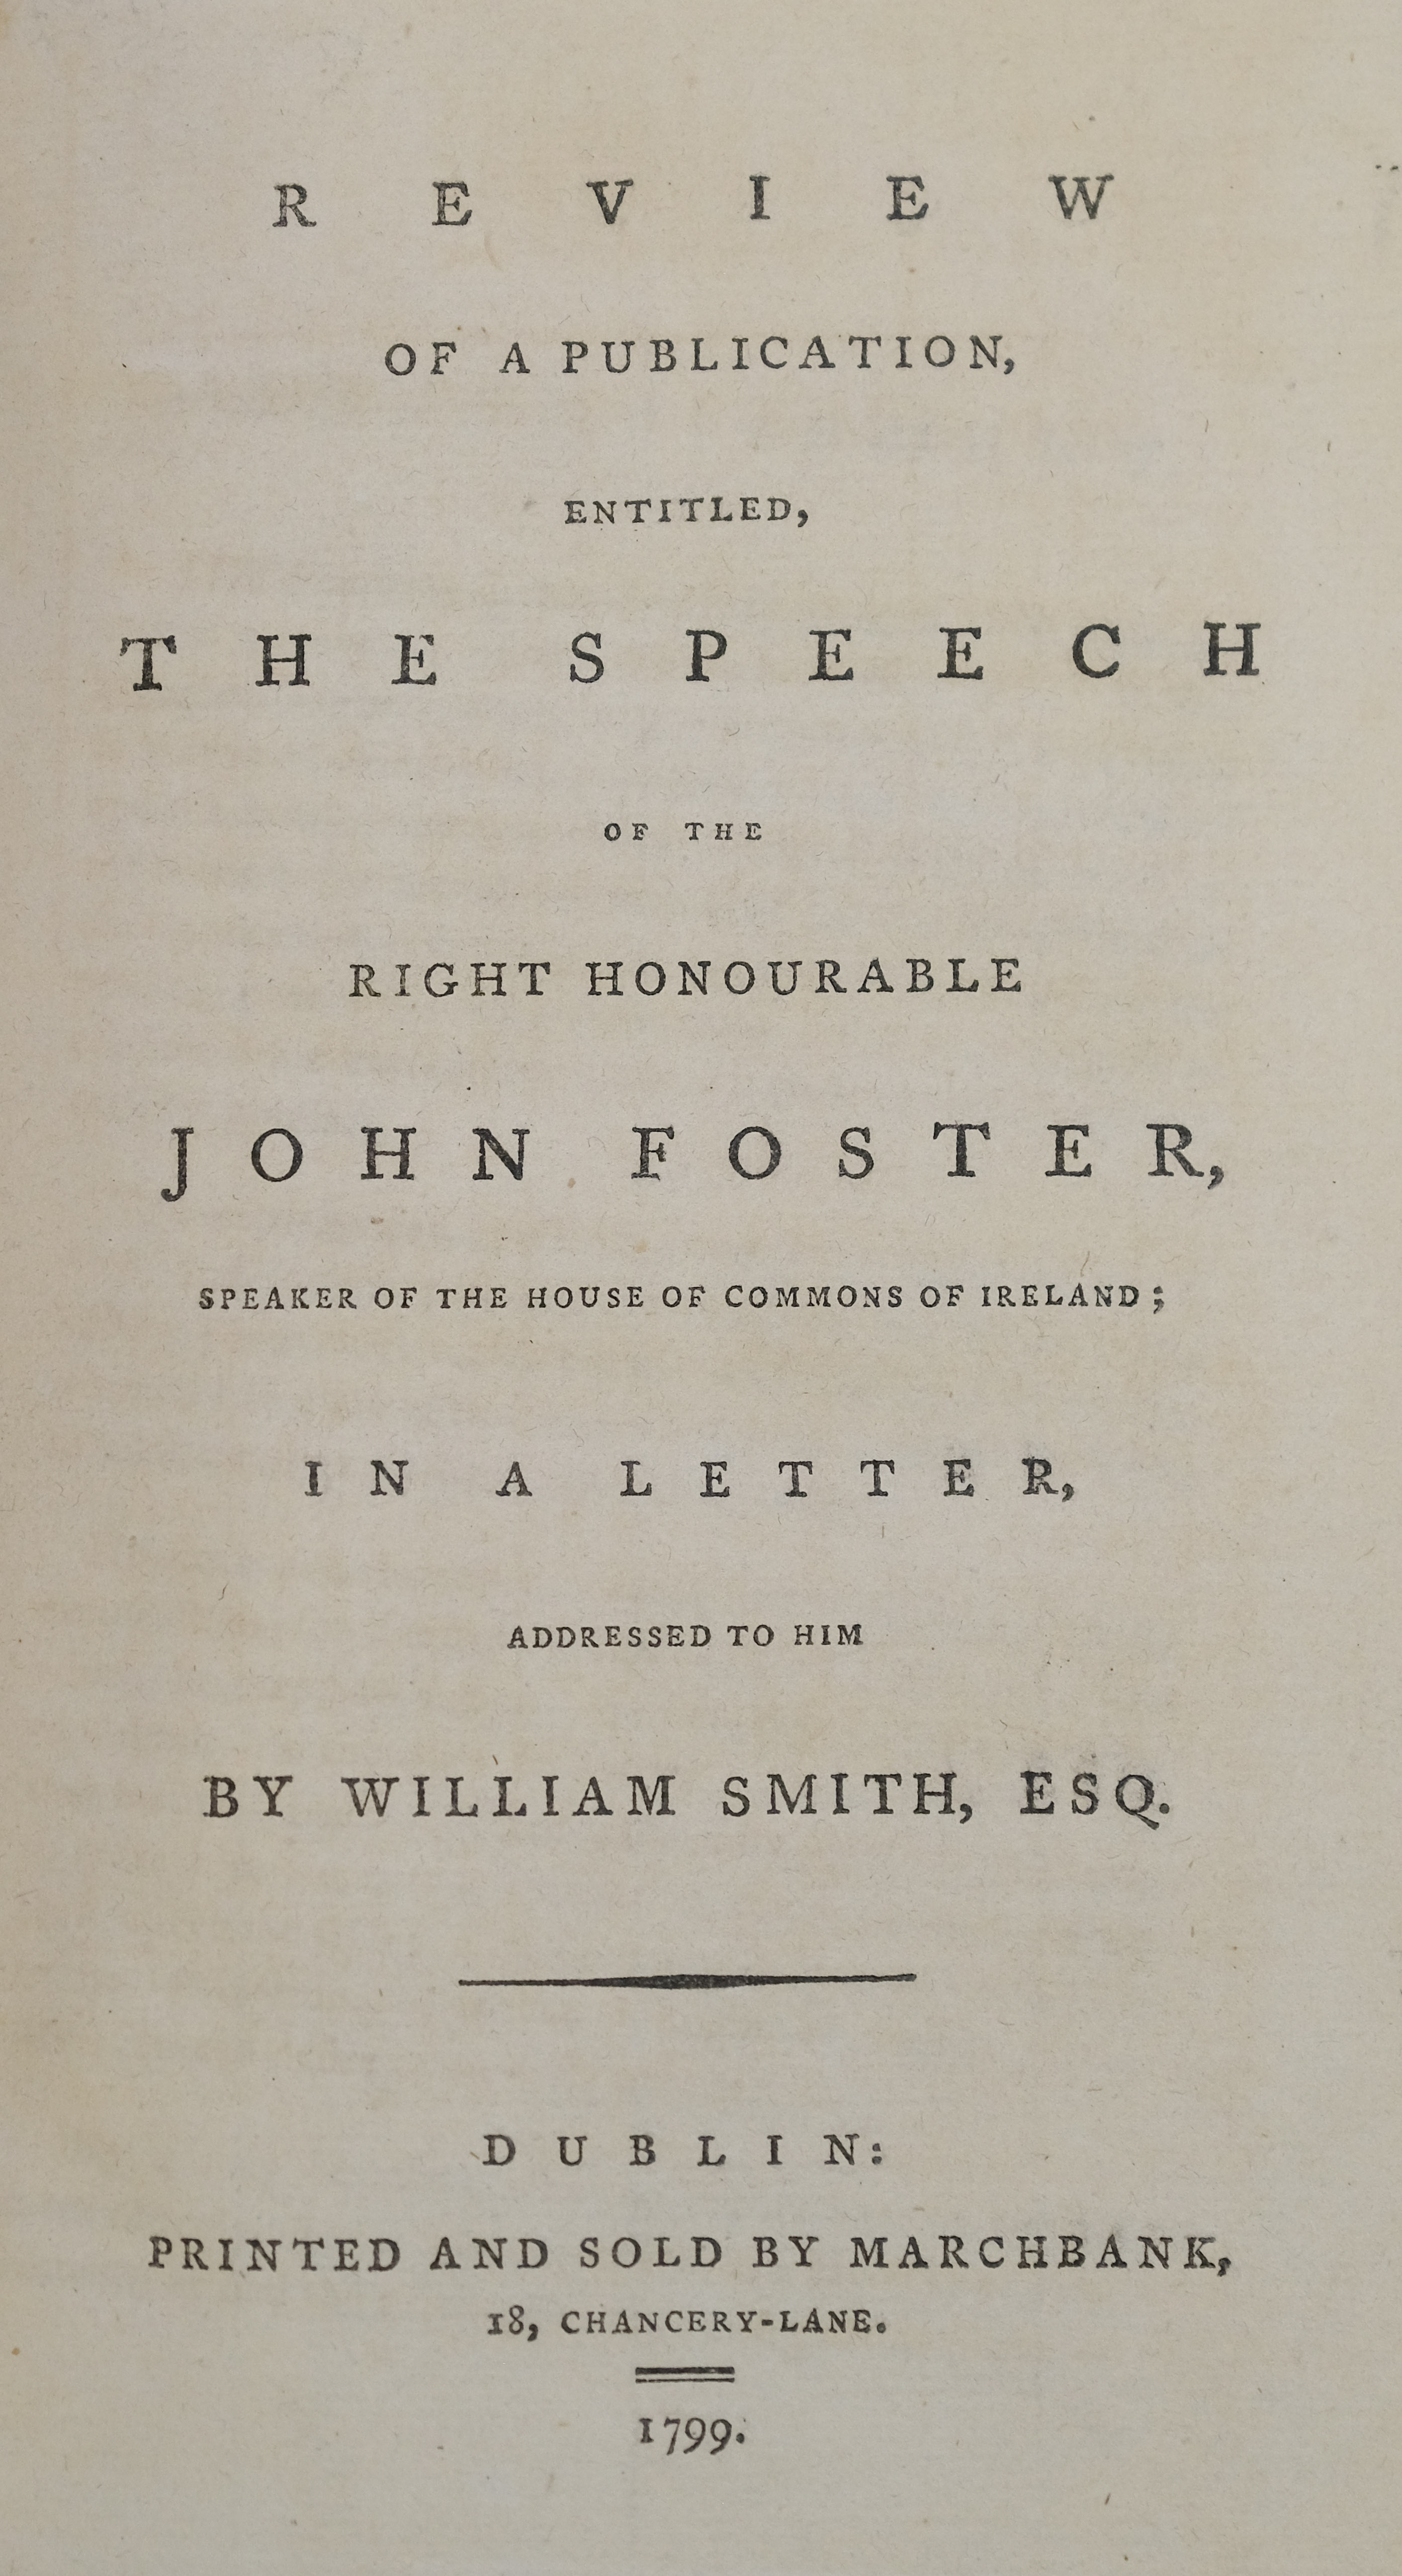 Smith (William). Review of a Publication ... Speech of the Right Honourable John Foster, 1799